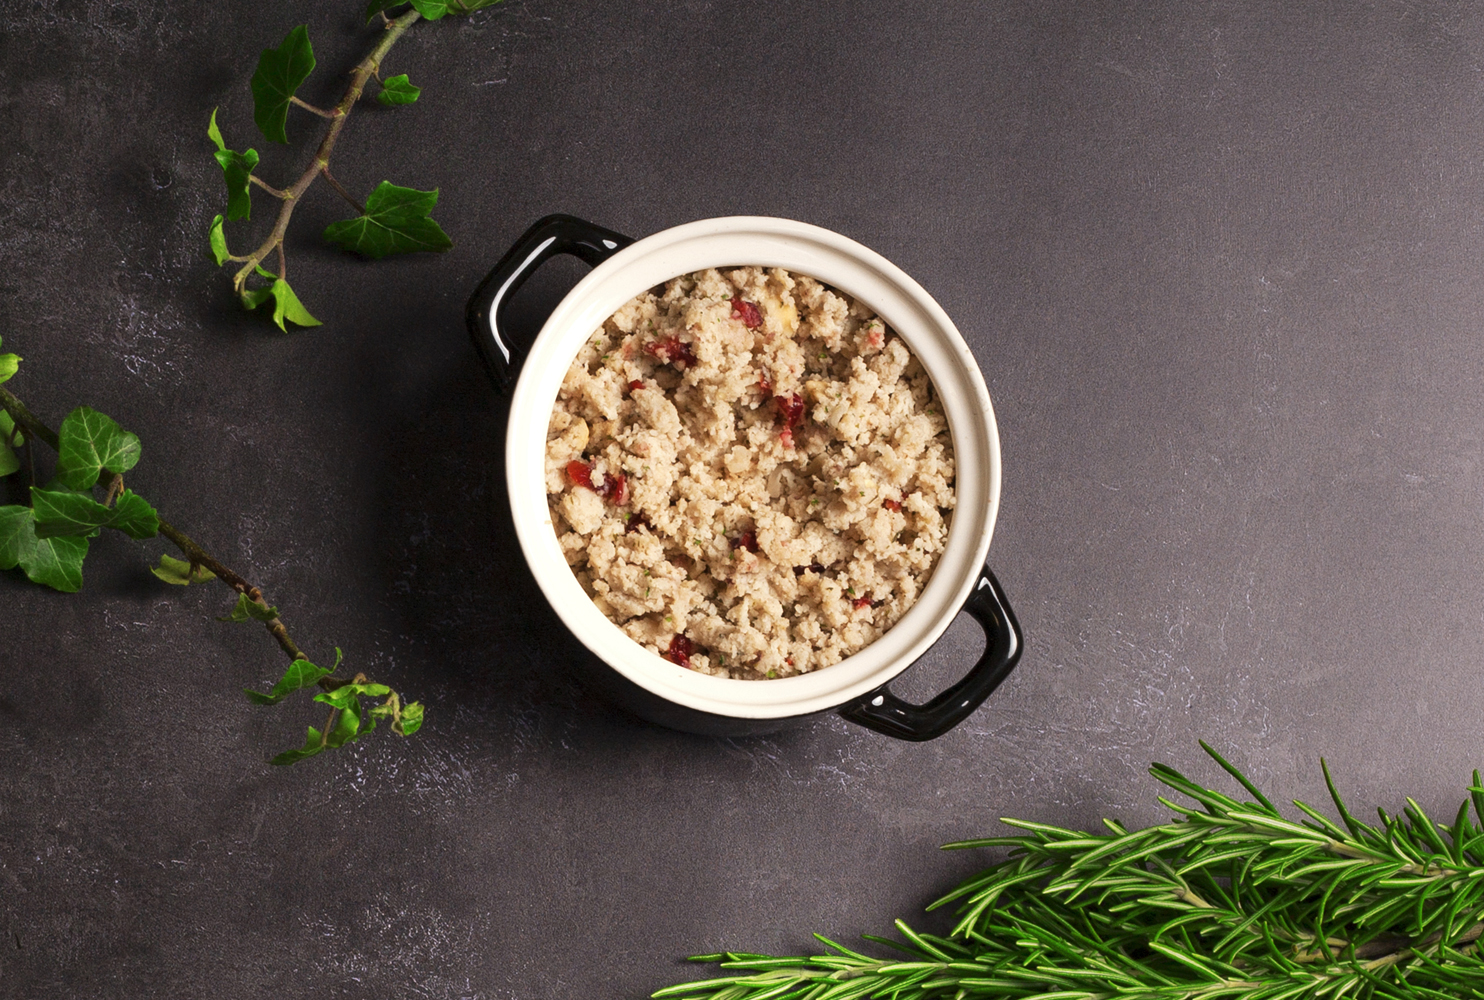 TYKE CRANBERRY & SPICED APPLE STUFFING MIX